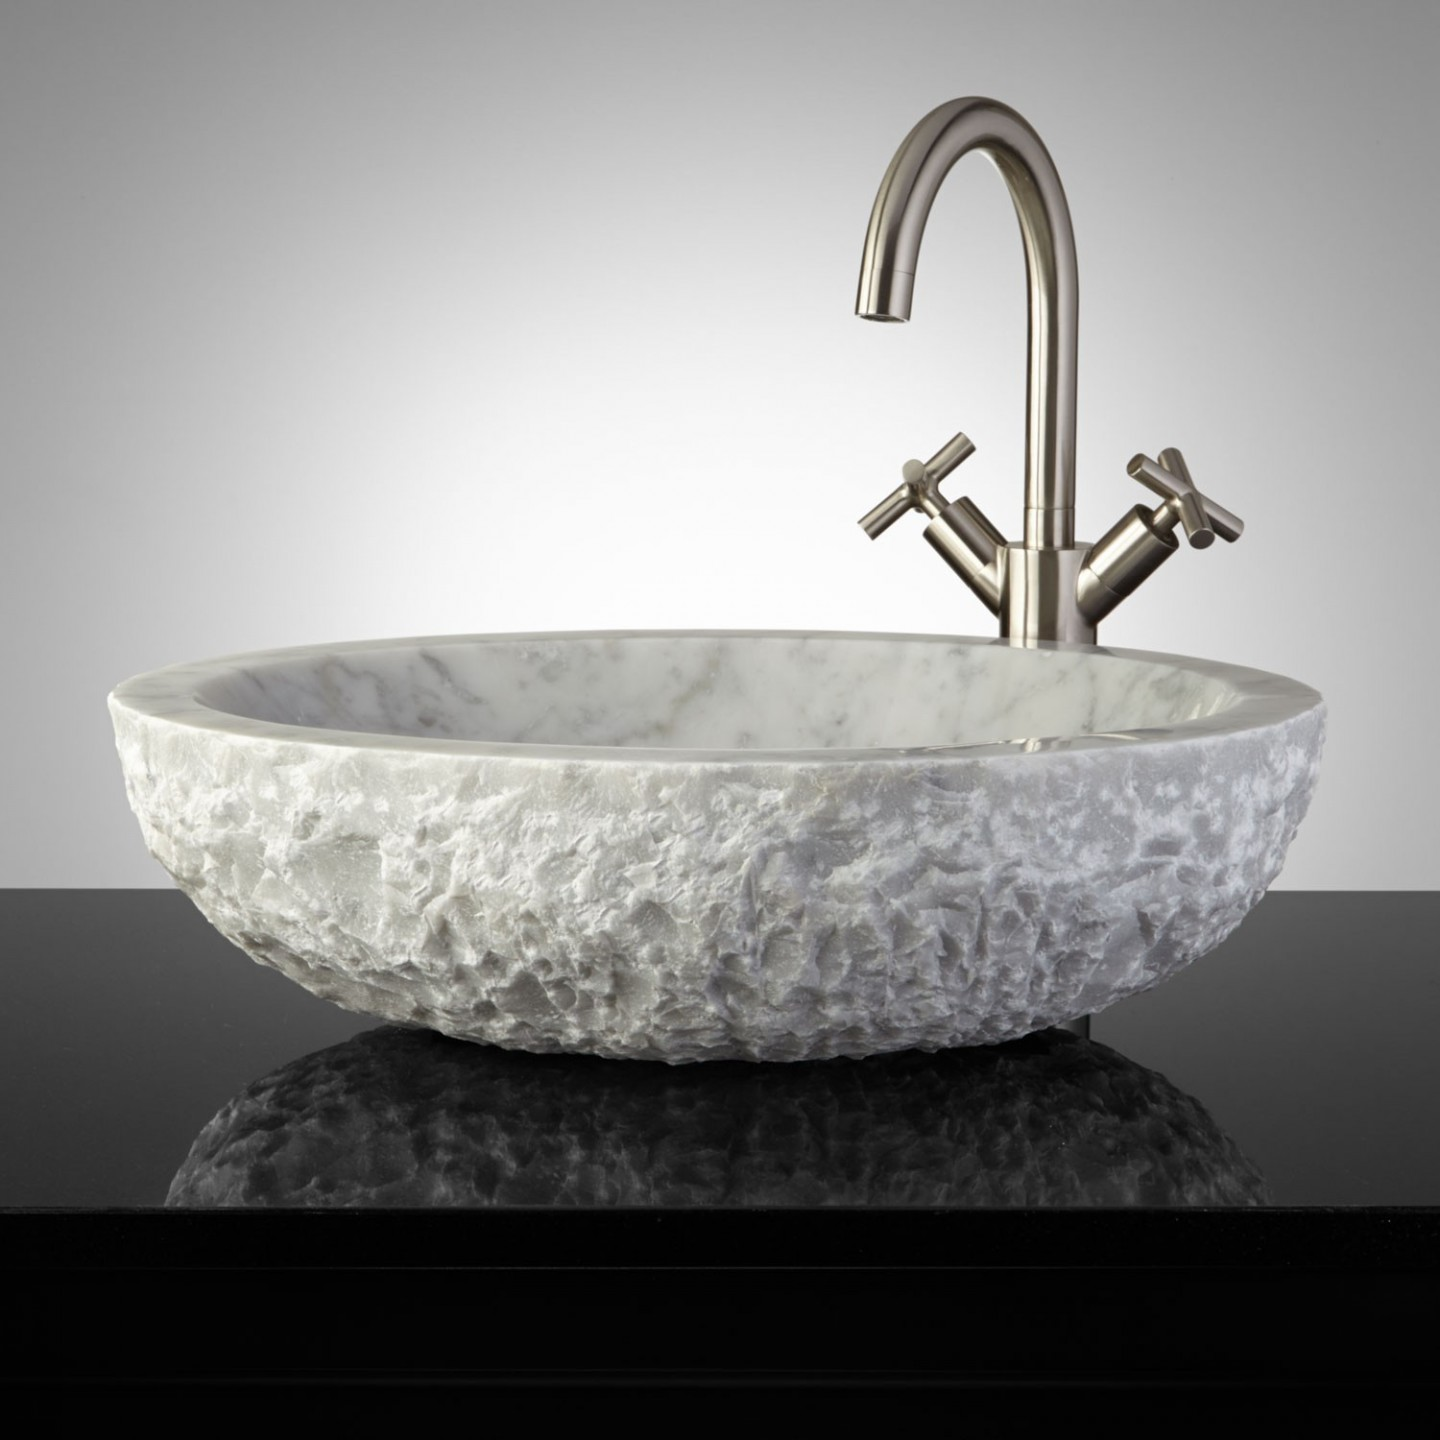 gallery/marble-oval-sink-carrara-counter-top